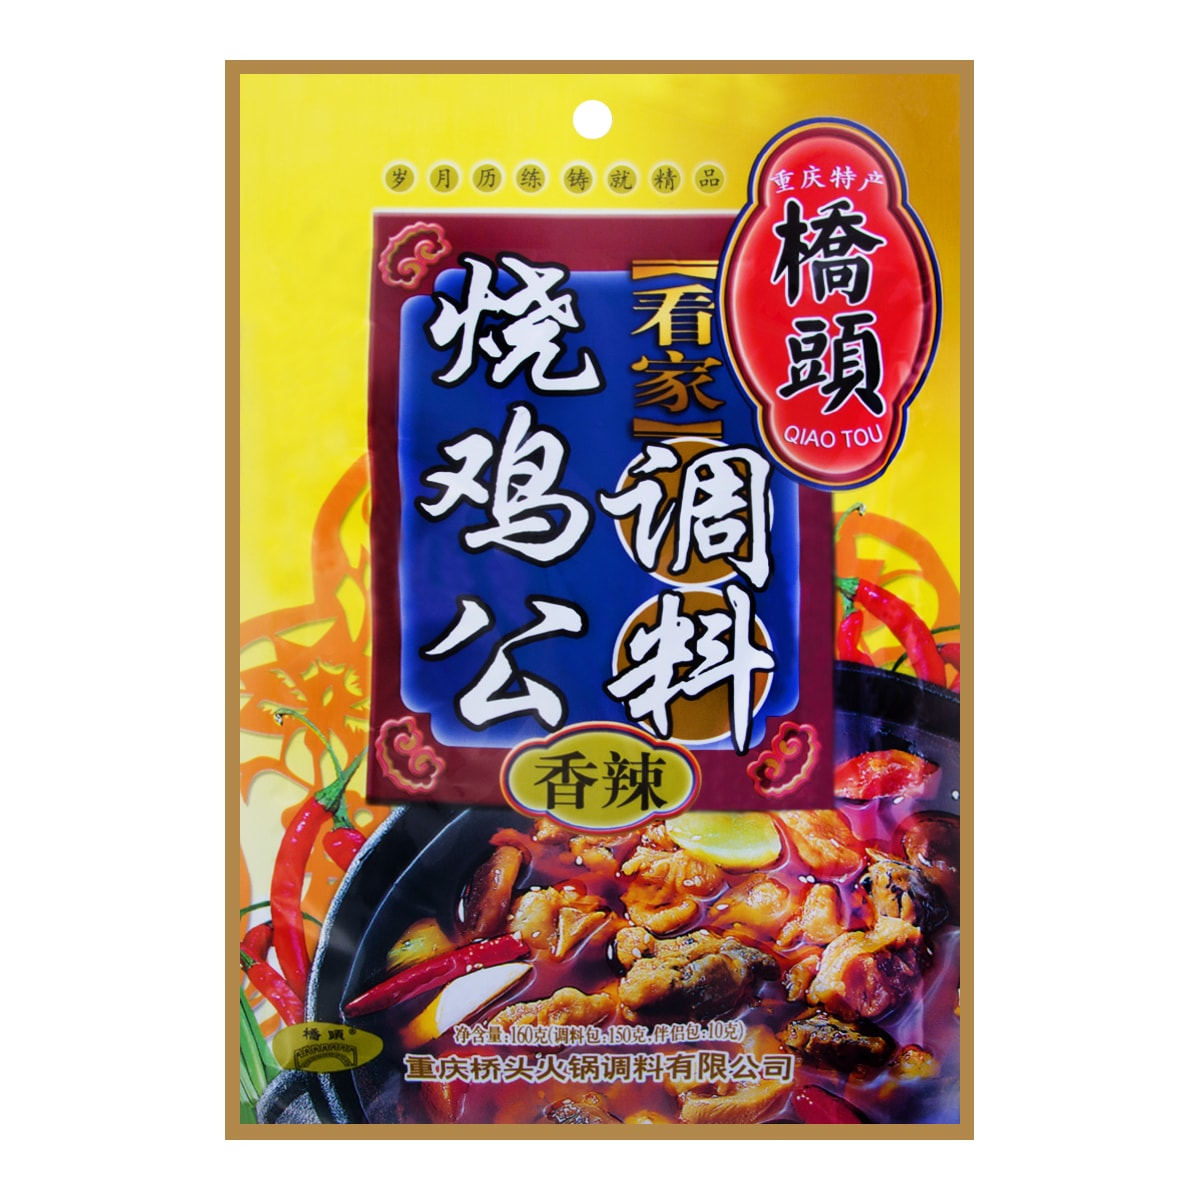 QIAOTOU Roast Chicken Seasoning 160g